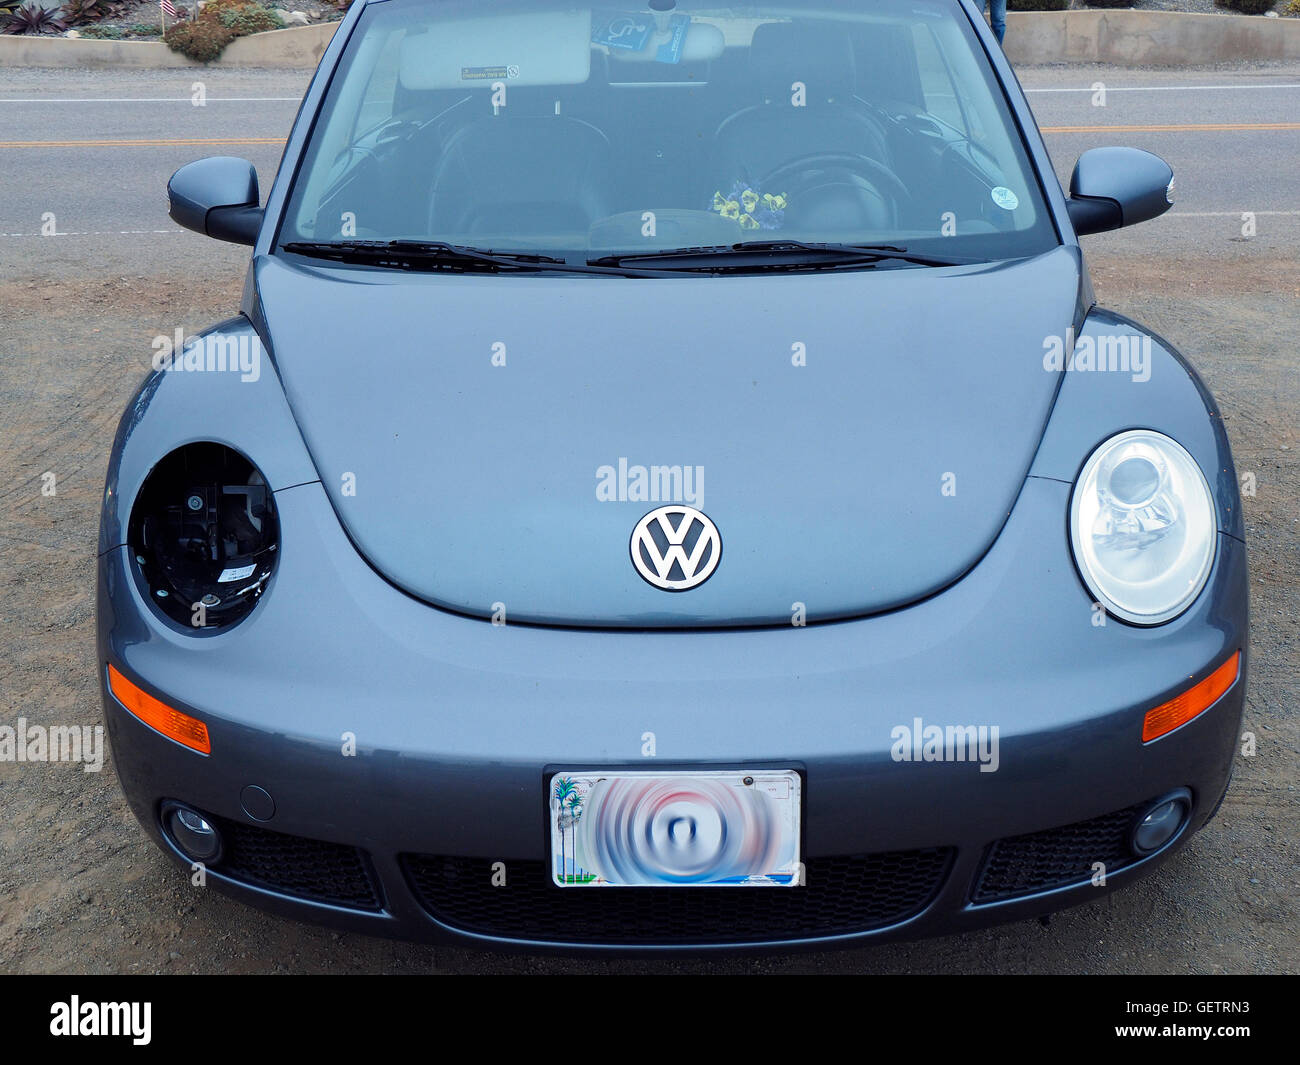 VW Bug Beetle Missing one Headlight - Stock Image